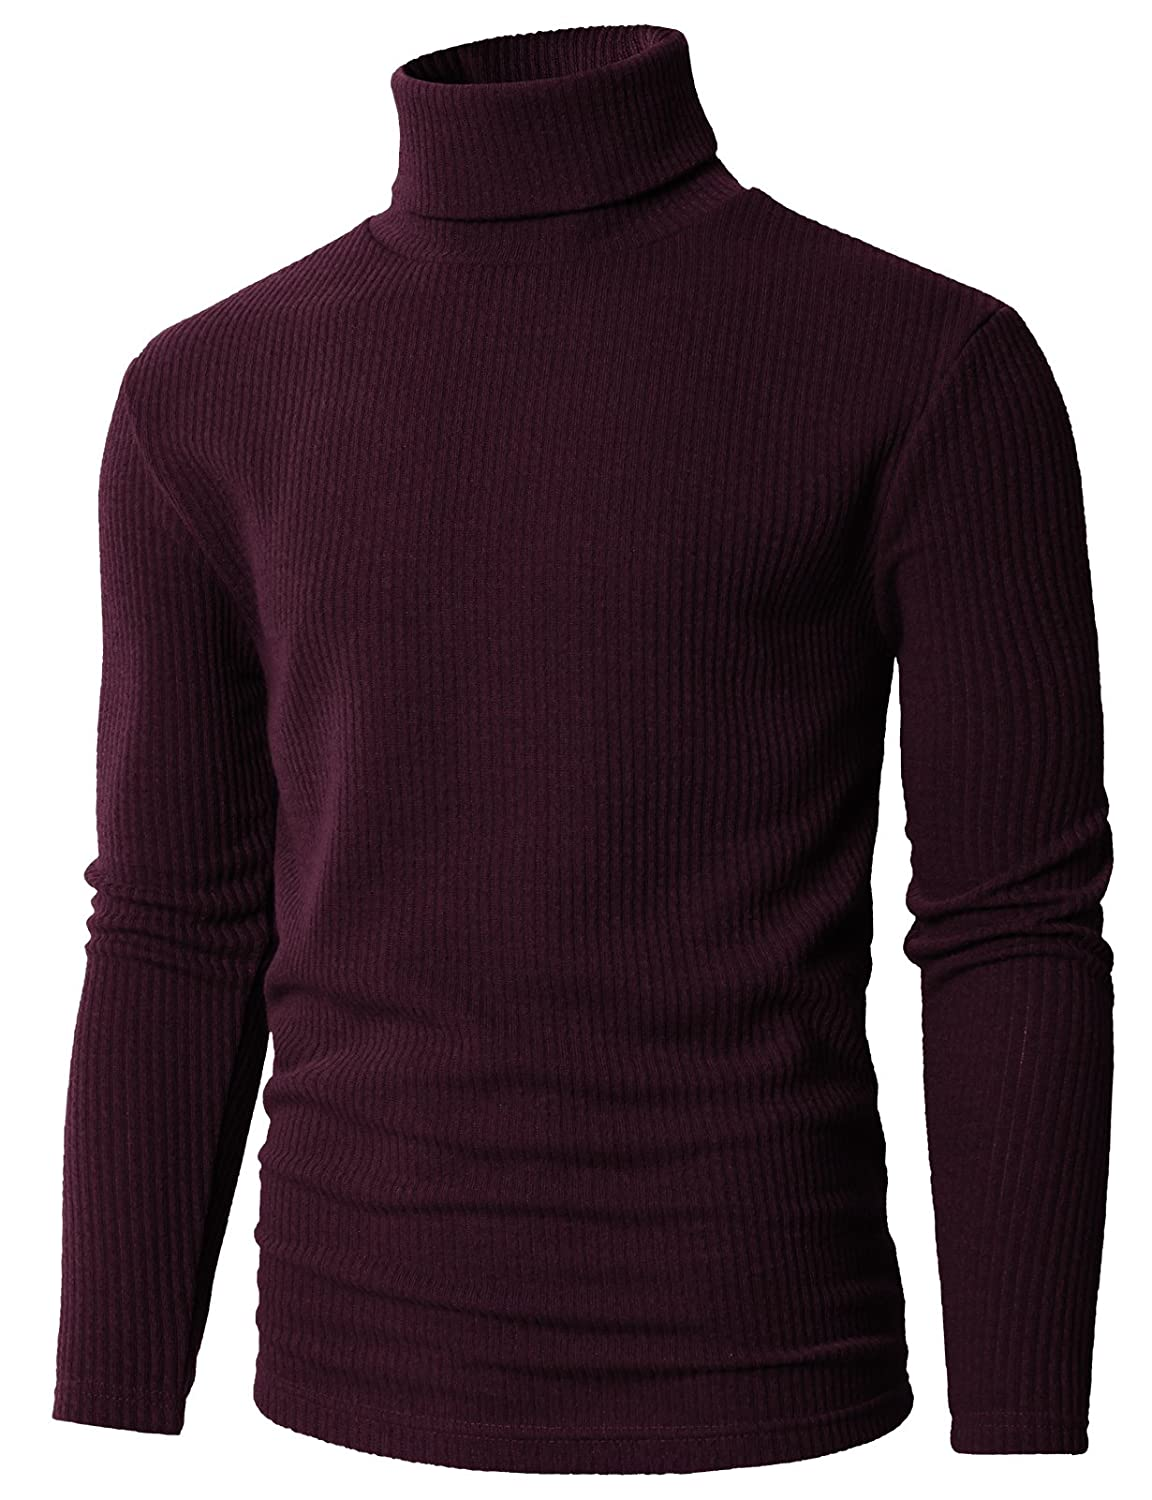 H2H Mens Slim Fit Basic Ribbed Thermal Turtleneck Pullover Sweaters #CMTTL099